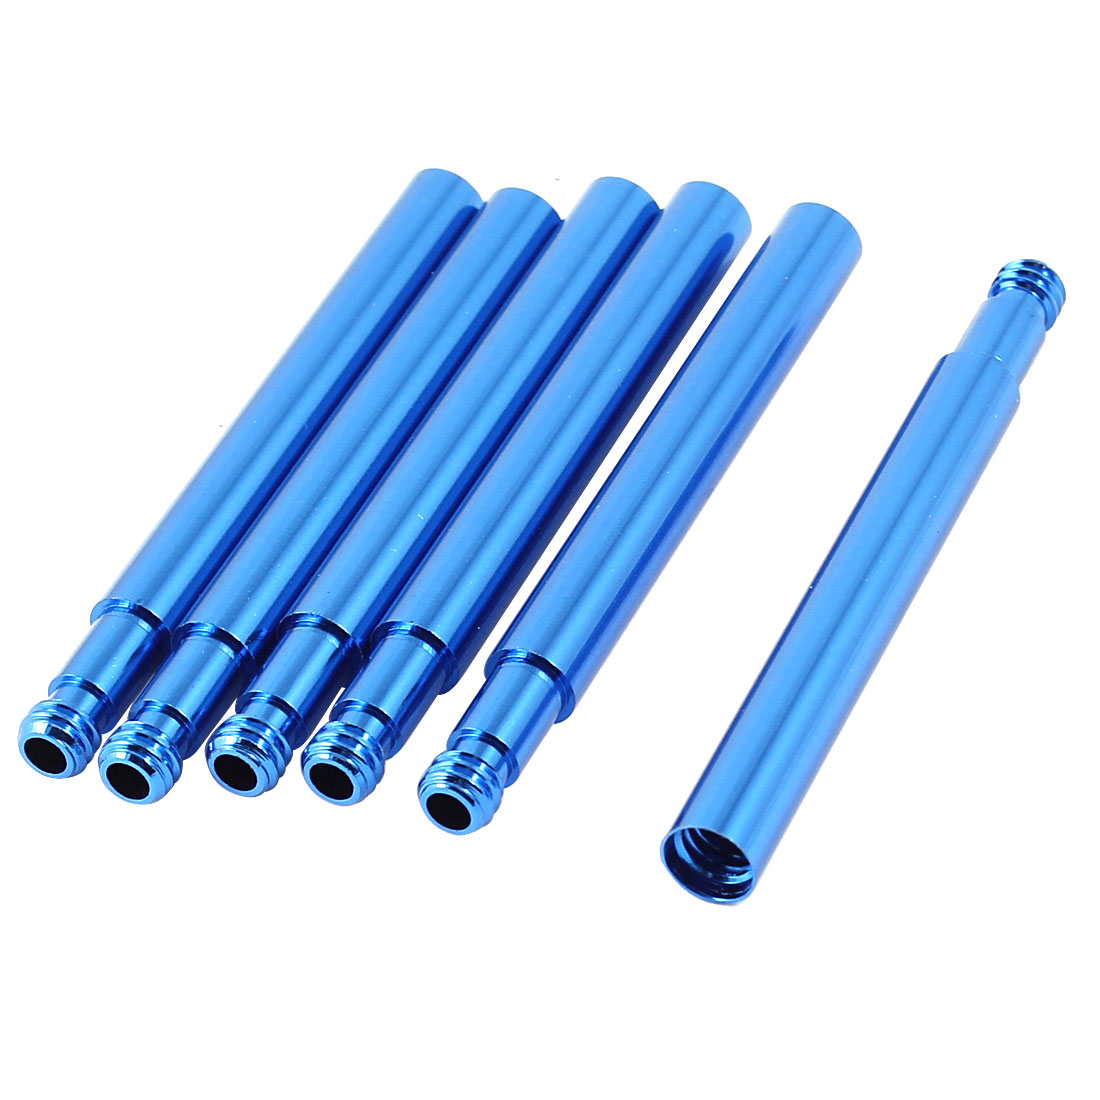 6 Pcs Presta French Type Mountain Bike Extension Valve Fittings Blue